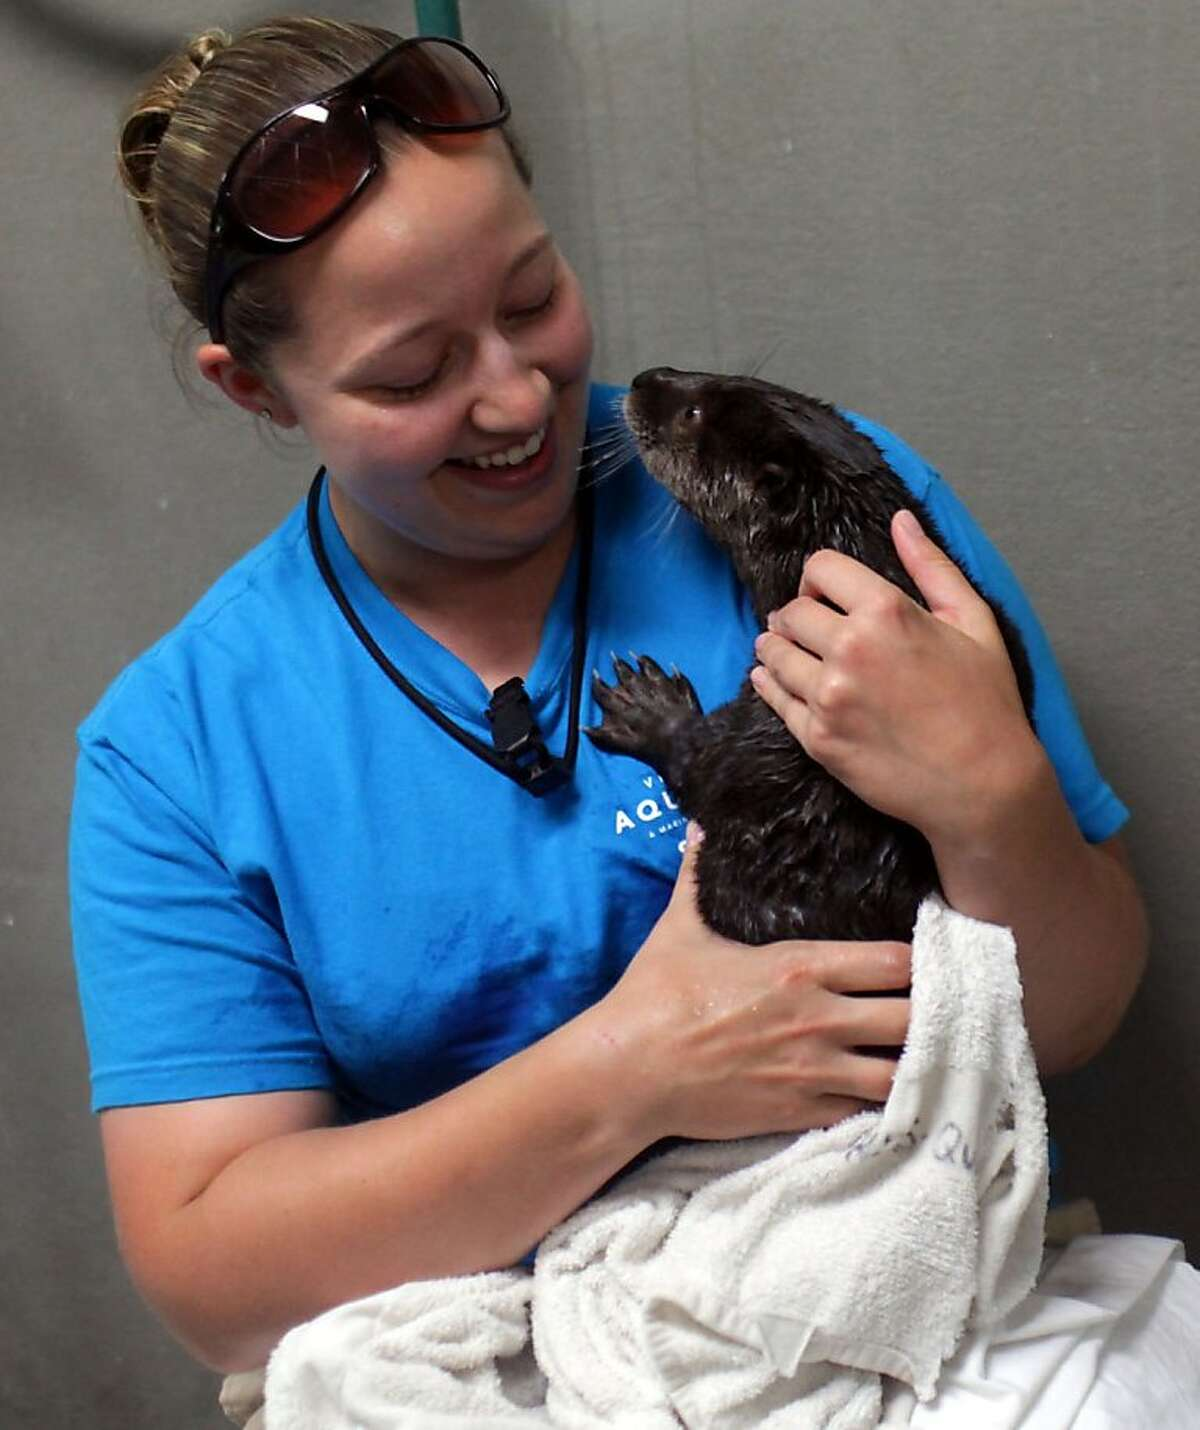 CORRECTS BYLINE TO ROSS TAYLOR INSTEAD OF SEAN PROCTOR - Virginia Aquarium animal trainer April Adams holds a baby otter in Virginia Beach, Va., on Tuesday, May 29, 2012. (AP Photo/Virginian-Pilot, Ross Taylor) MAGS OUT